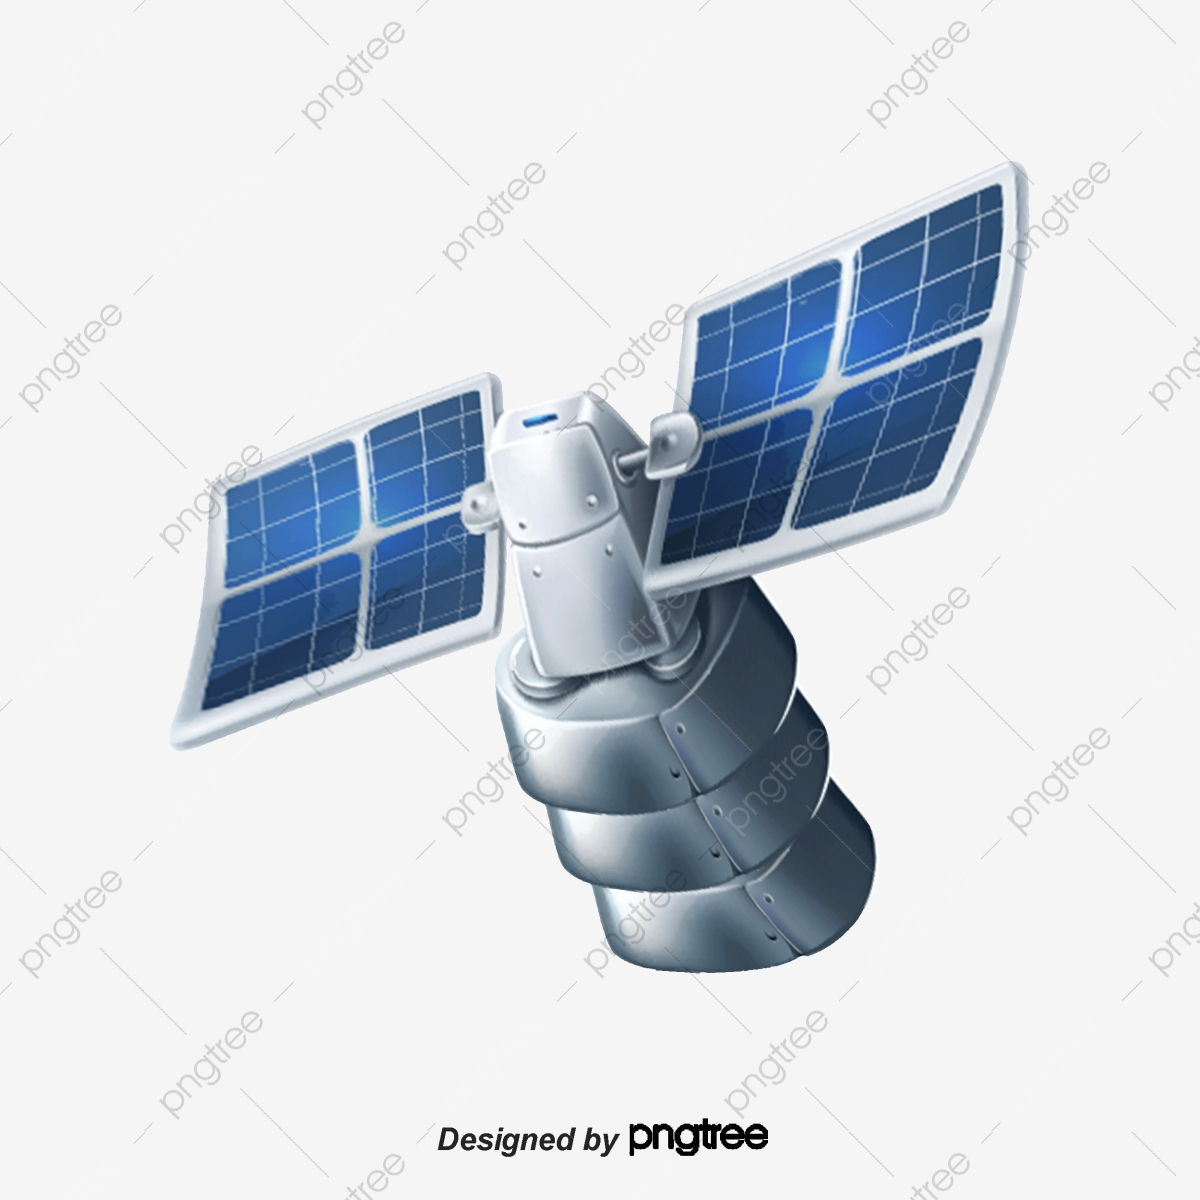 Gps Satellite Positioning To Pull Material Free, Gps Positioning.